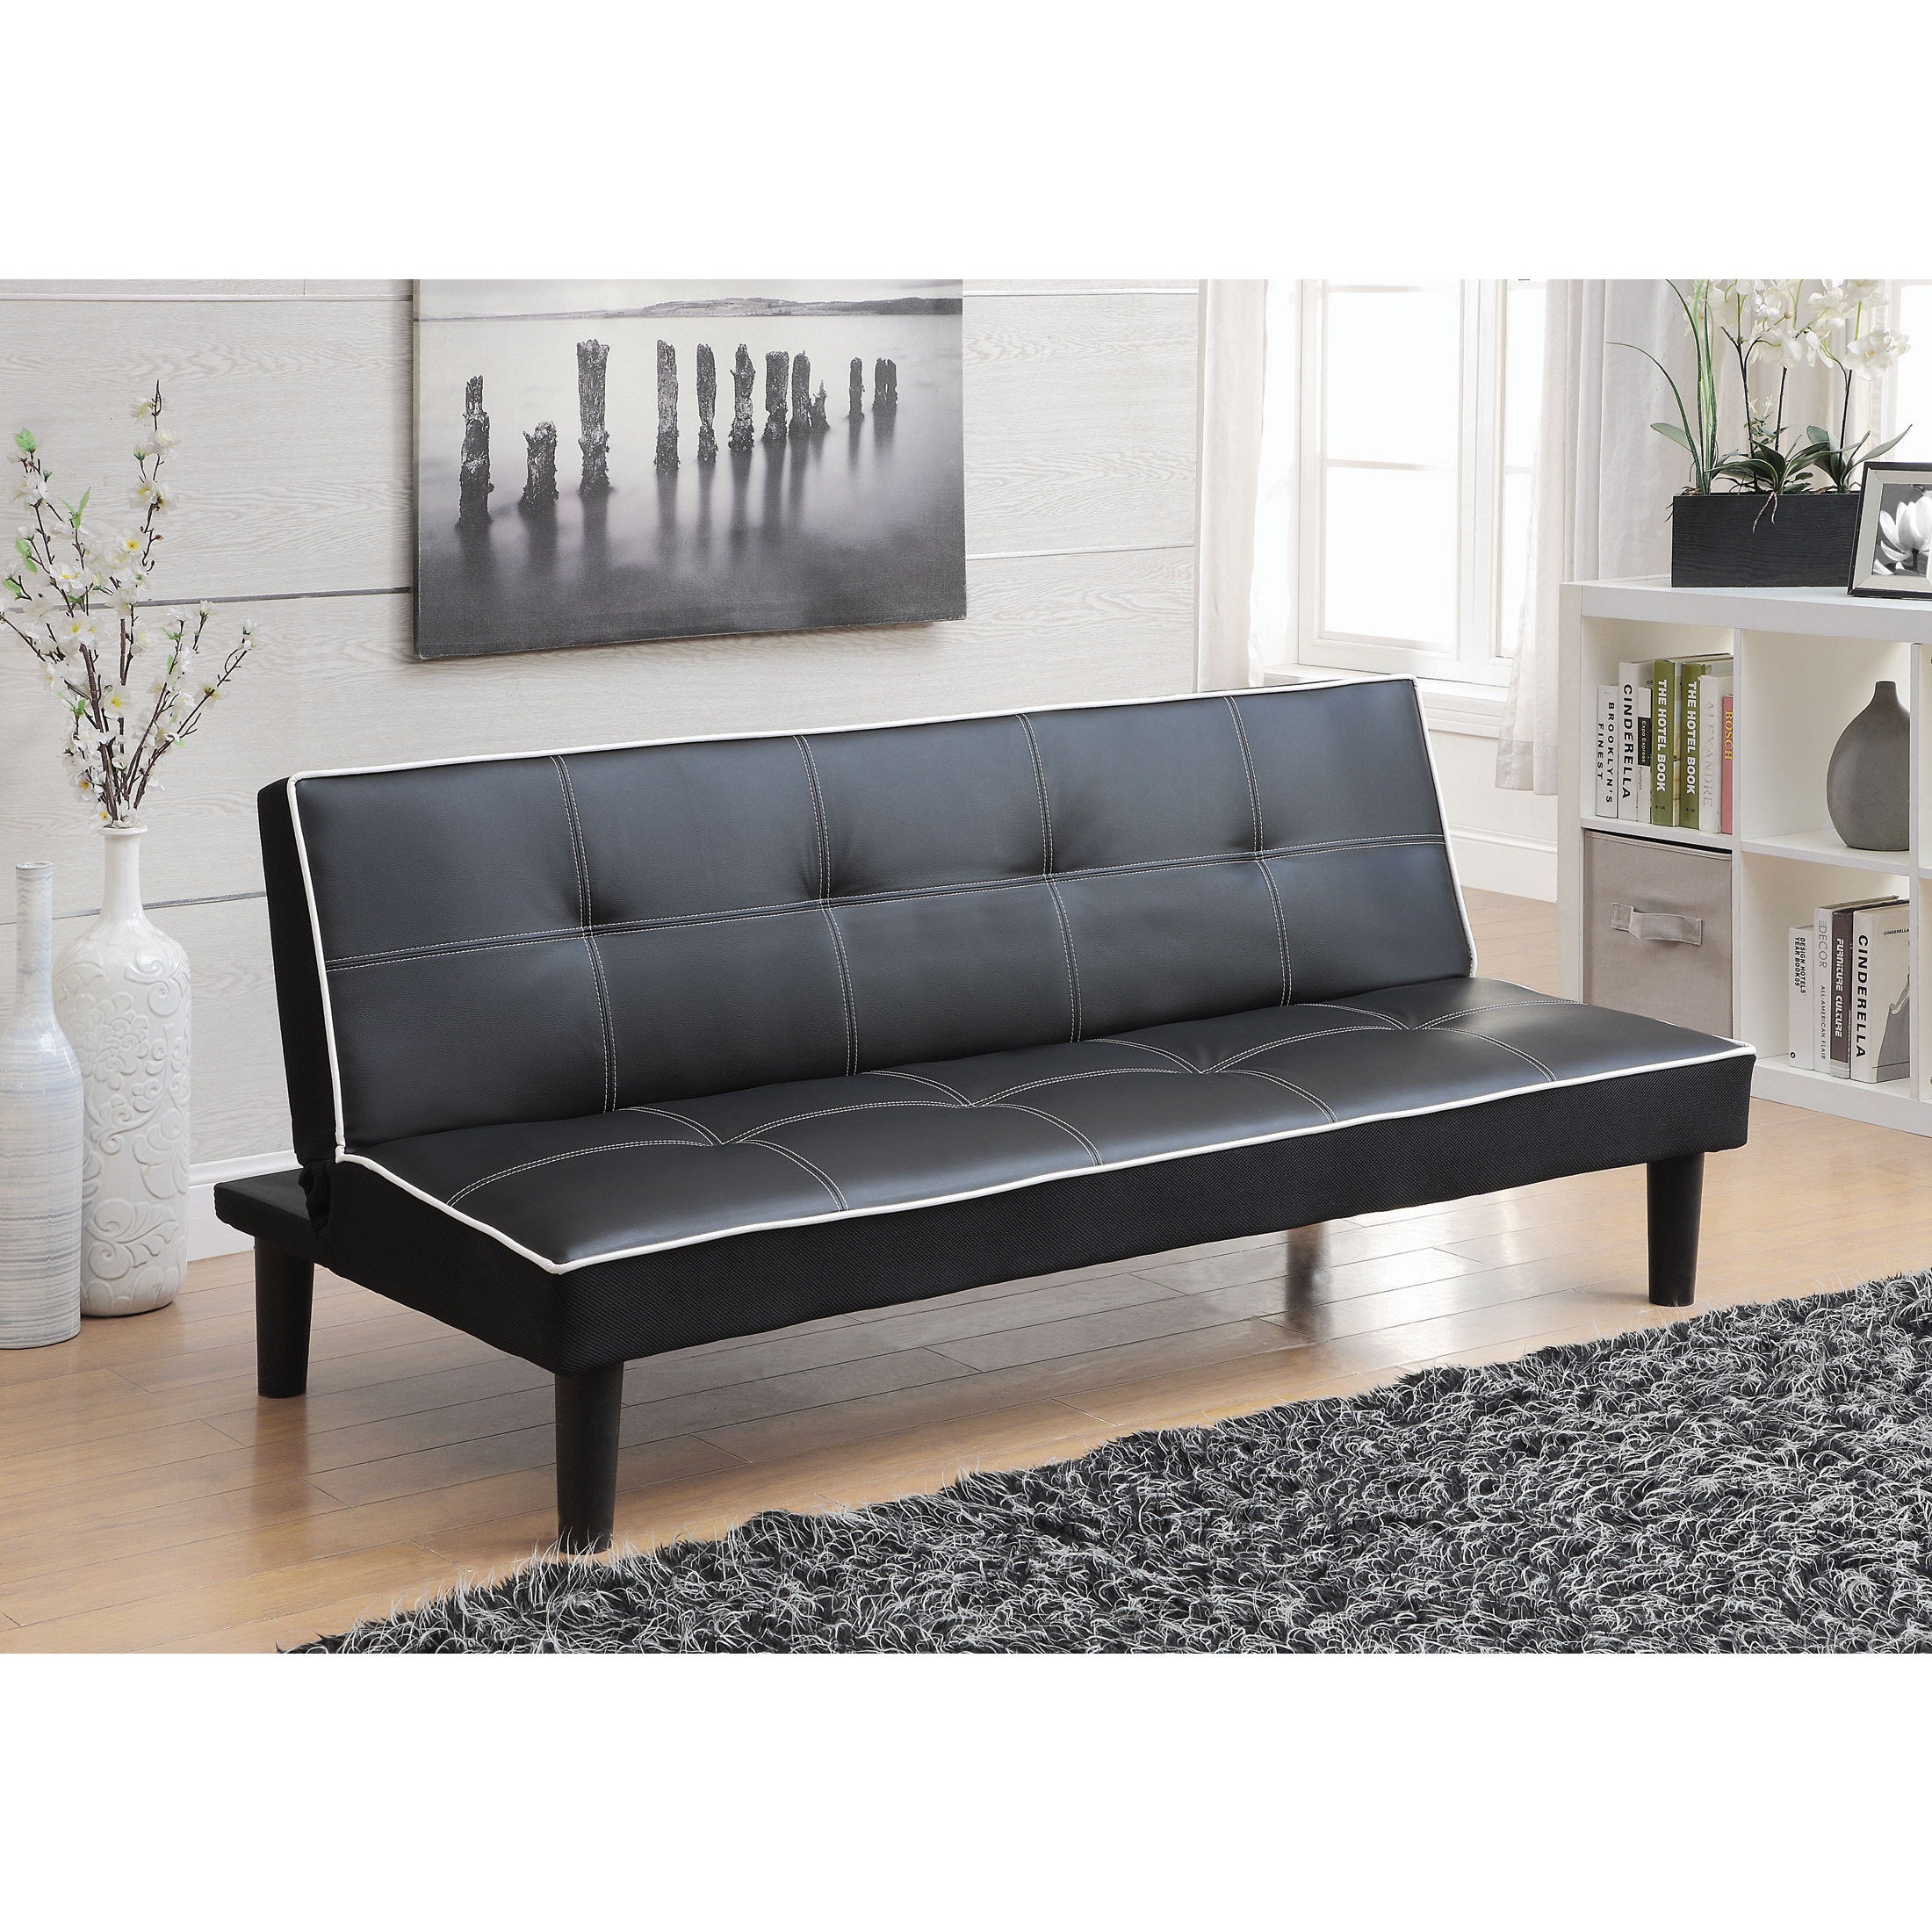 Shop Coaster Company Home Furnishings Sofa Bed (Black)   Free Shipping  Today   Overstock.com   12189960